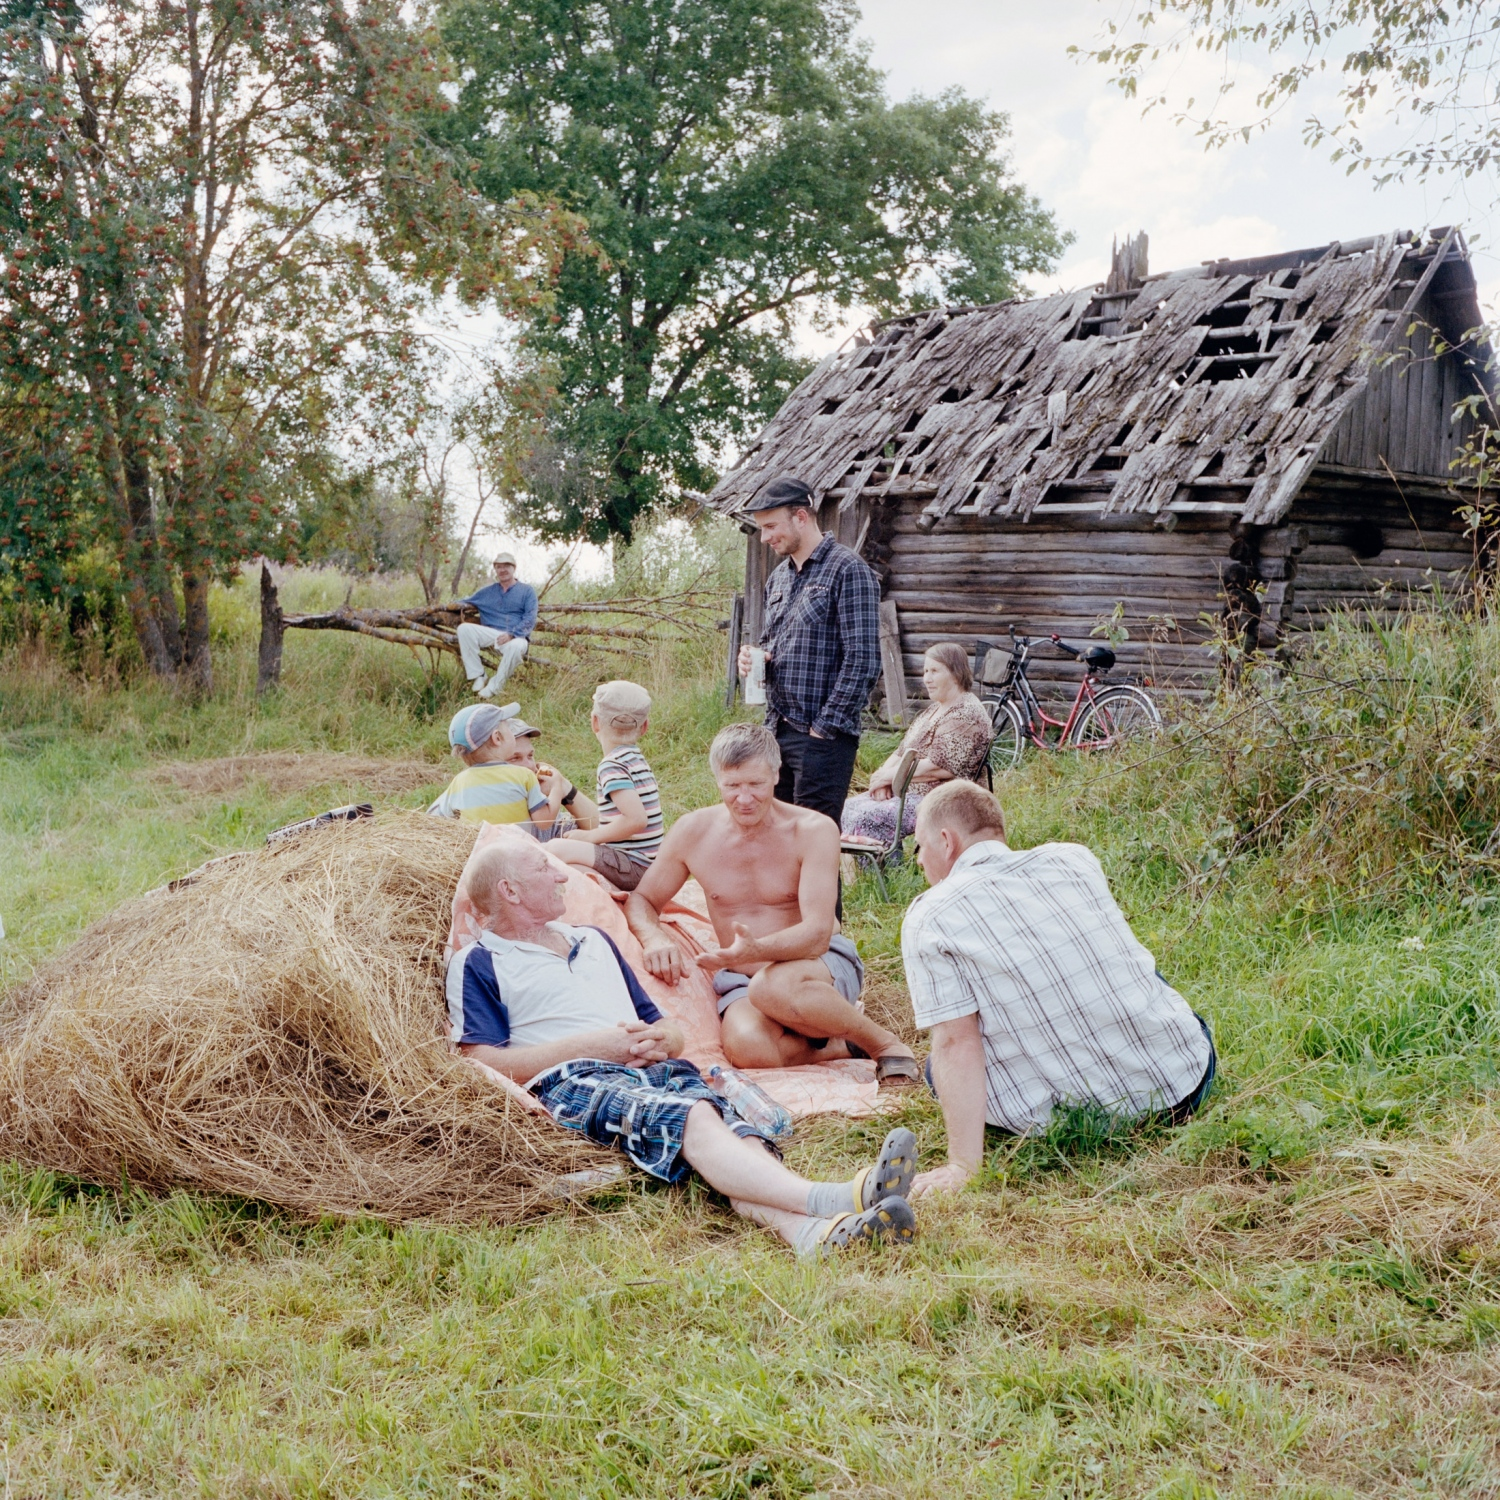 This Seto family who picnics in the fields participates in a village party called kirmas. An opportunity to meet with different generations to discuss, play, dance and sing while drinking hansa, a local version of vodka.